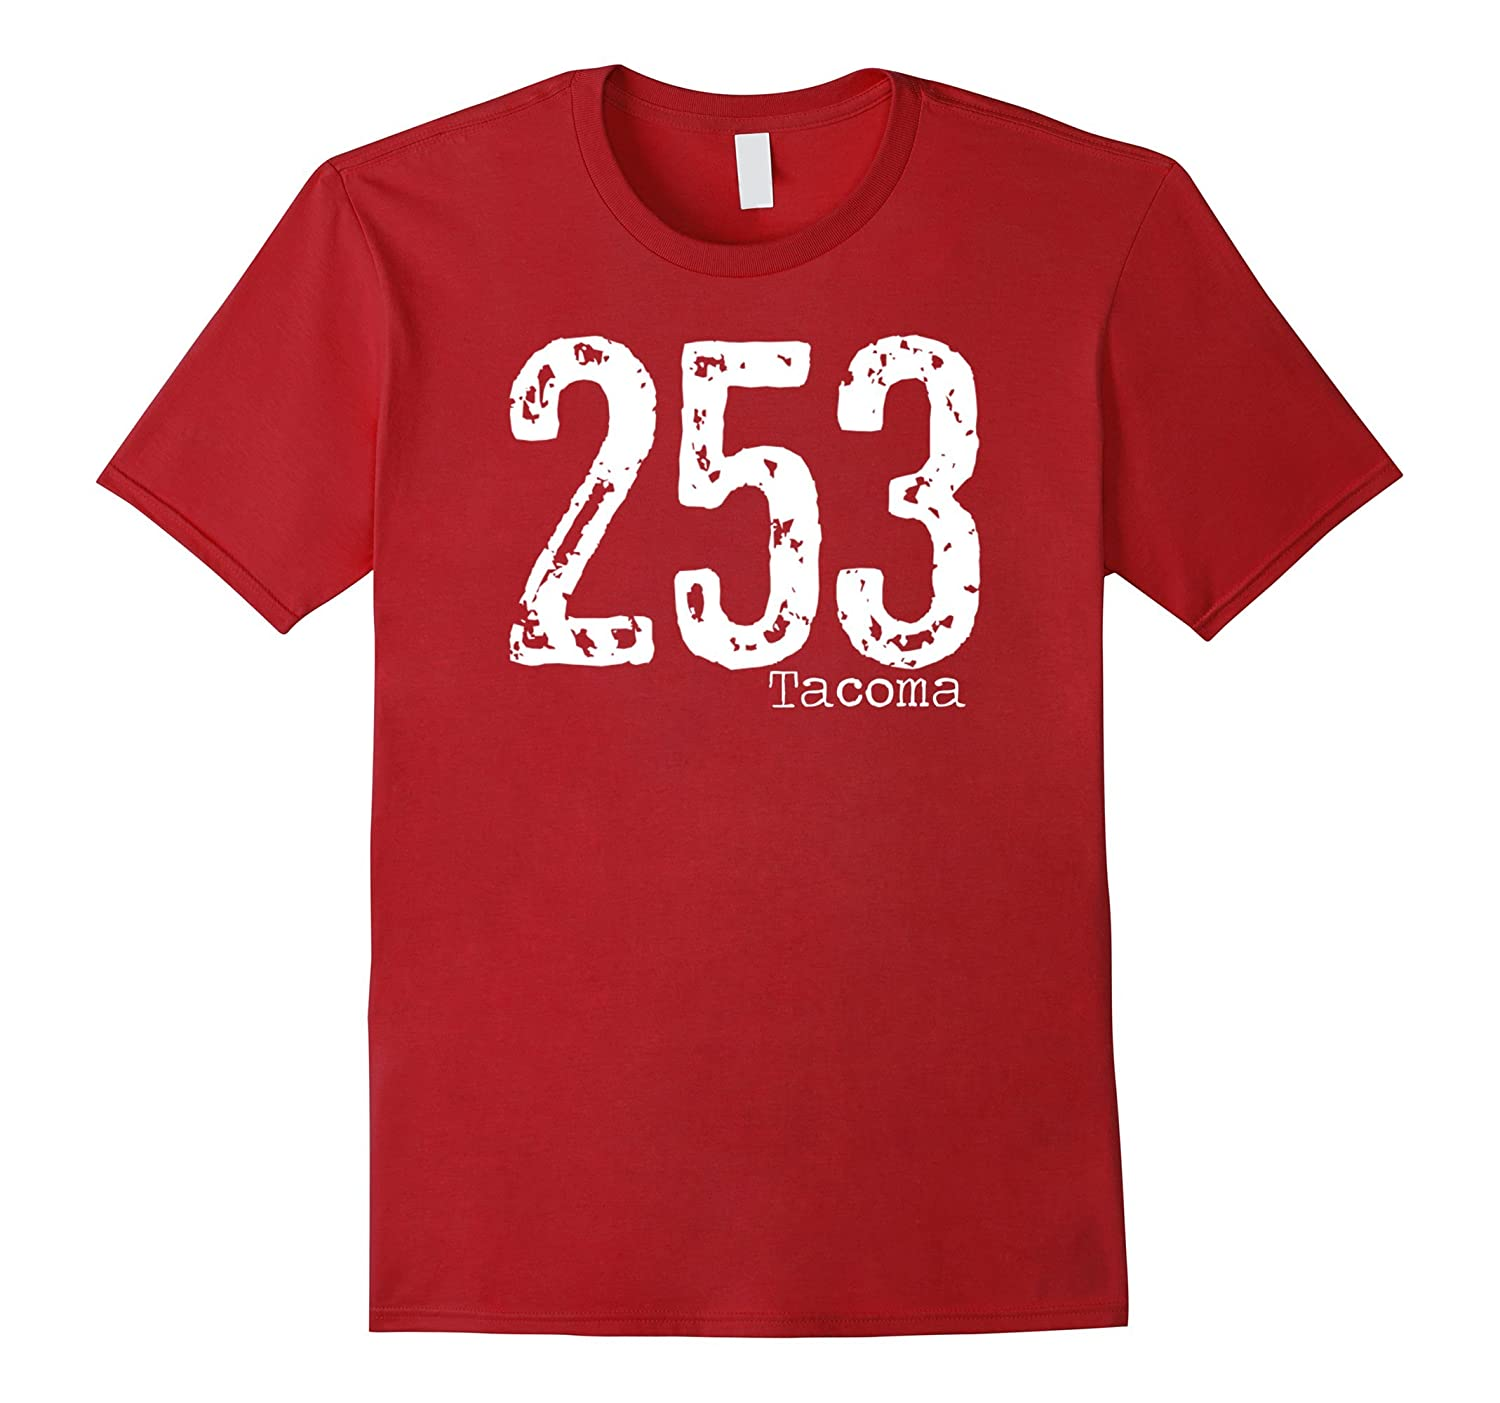 253 Tacoma Area Code T-Shirt Distressed Vintage-TH